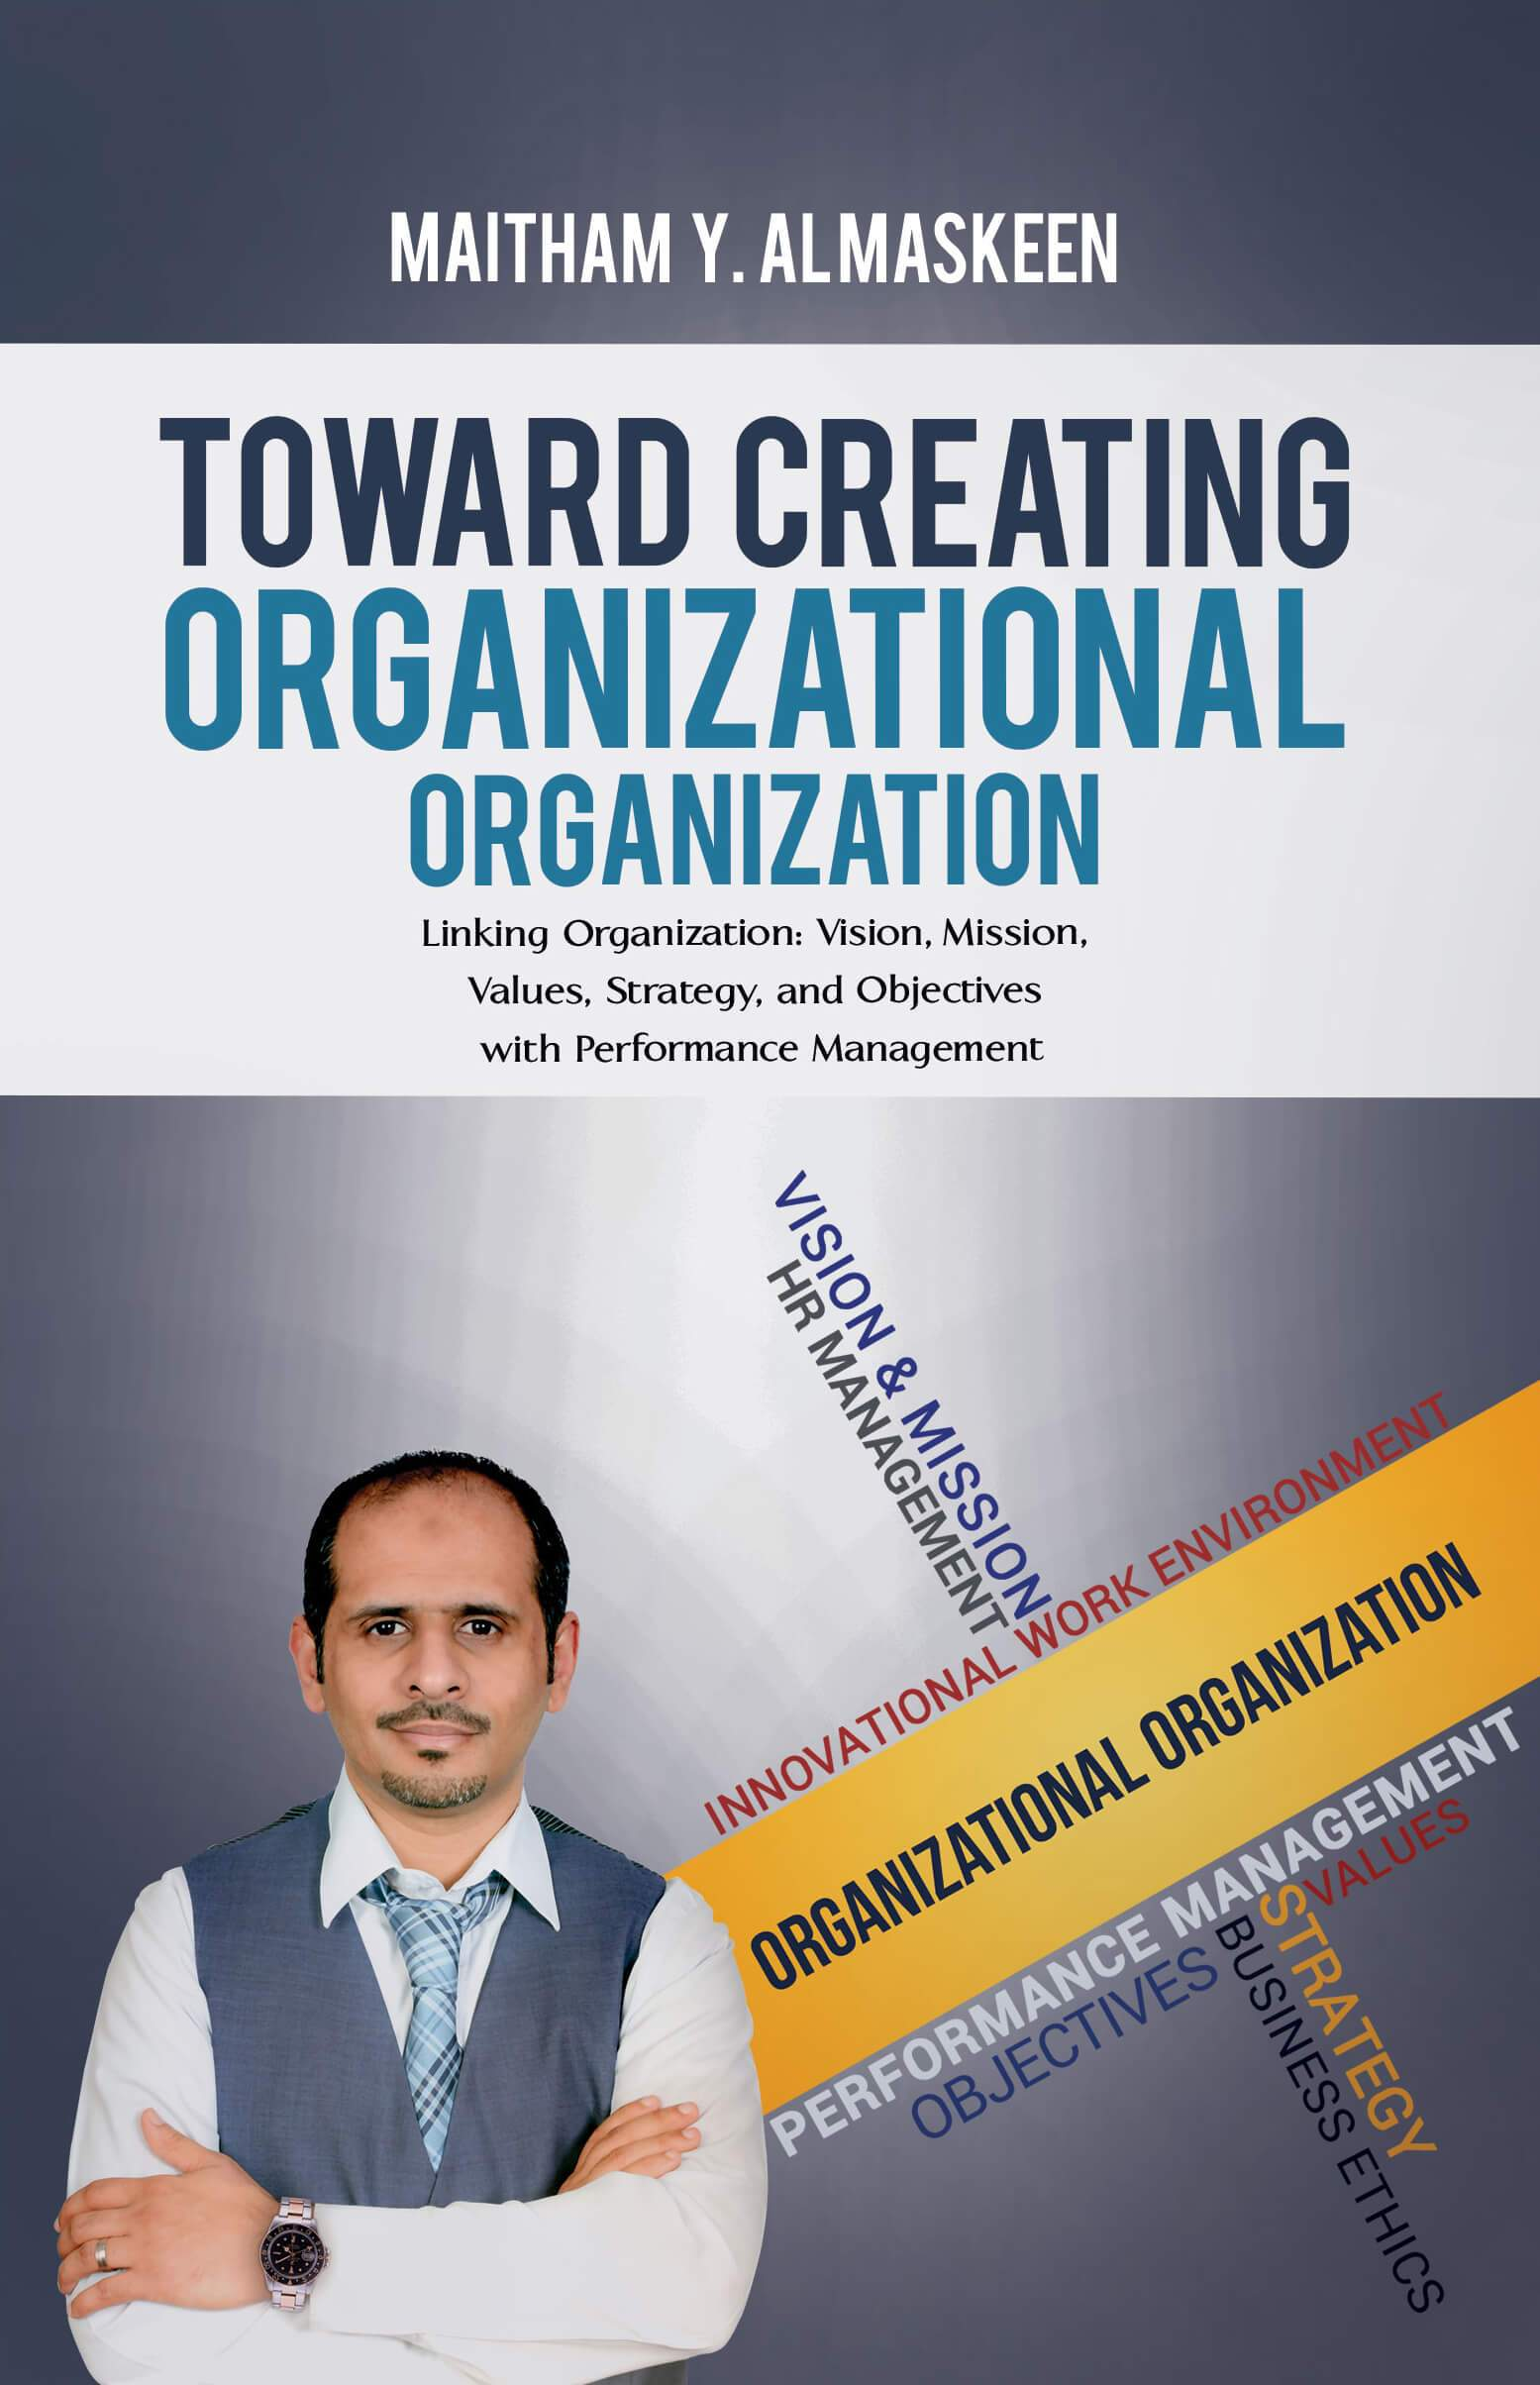 Toward Creating Organizational Organization